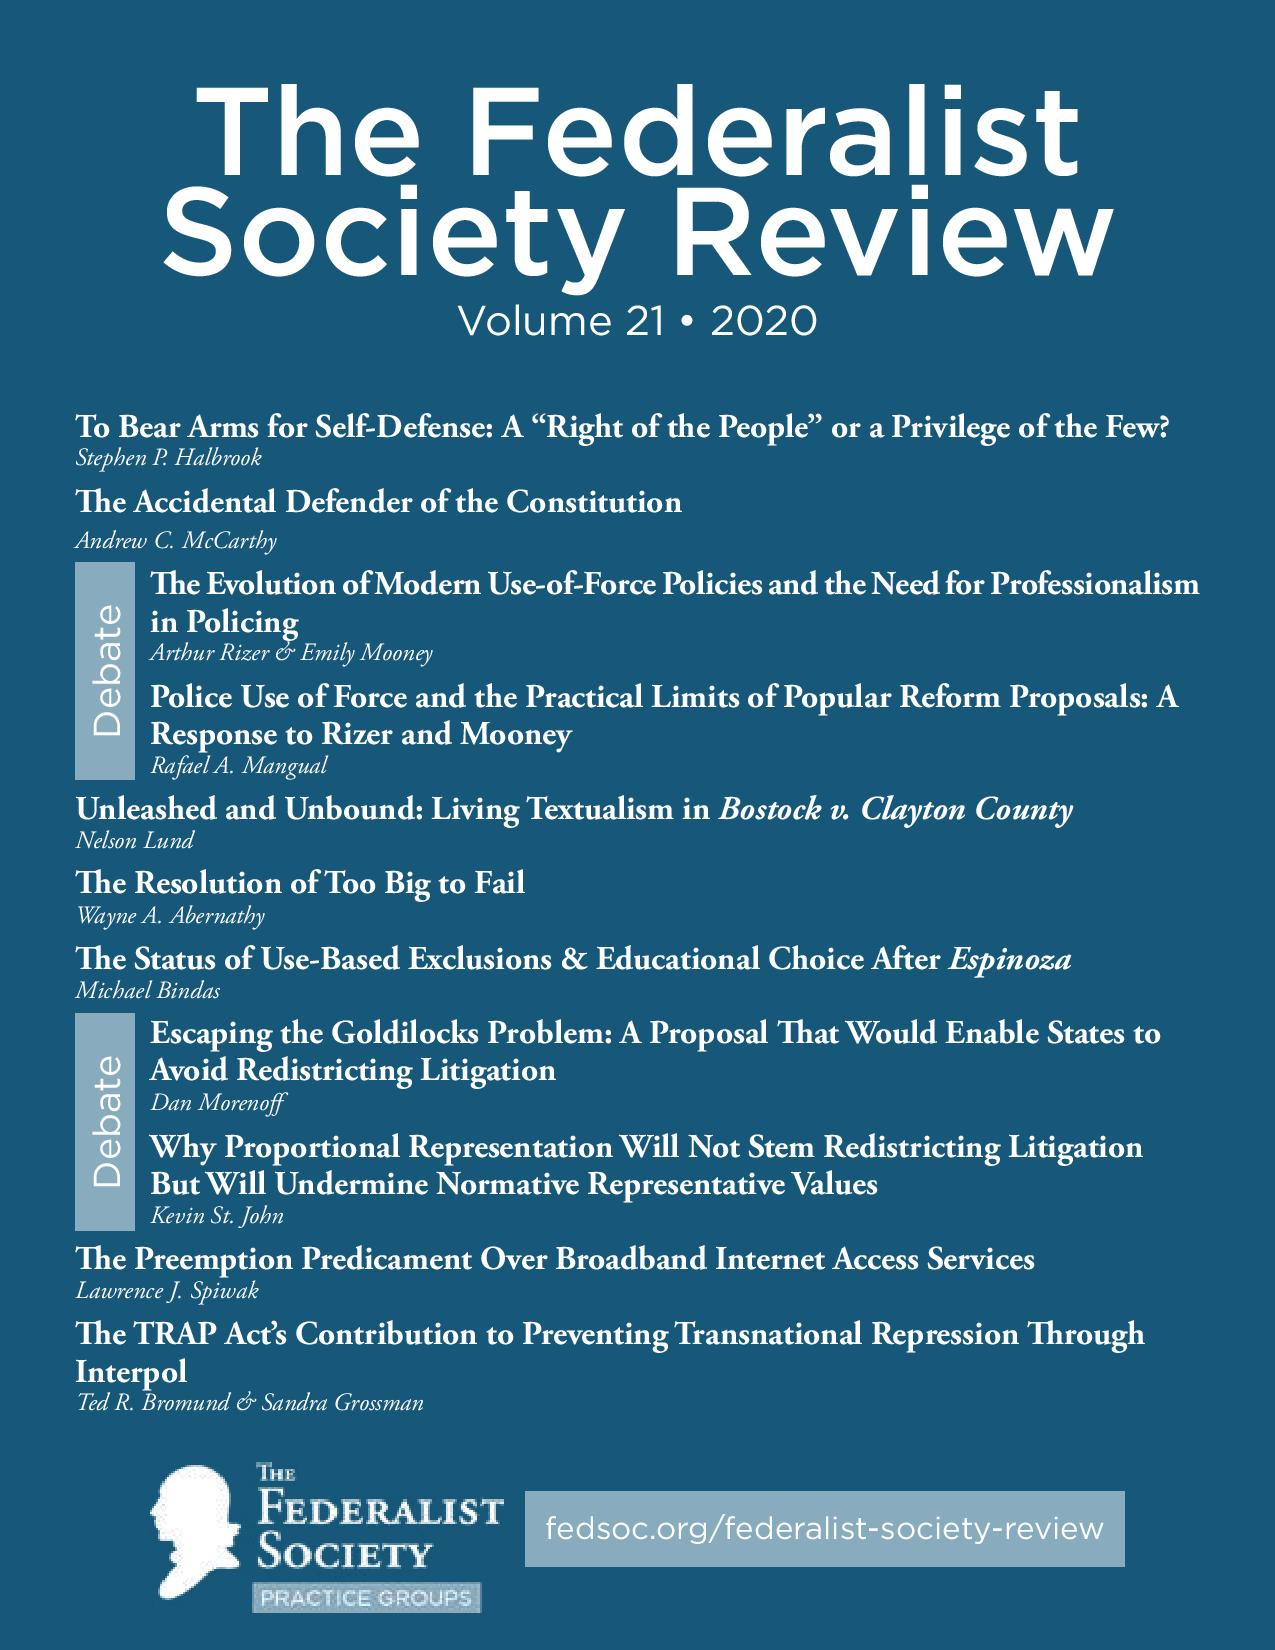 Federalist Society Review, Volume 21